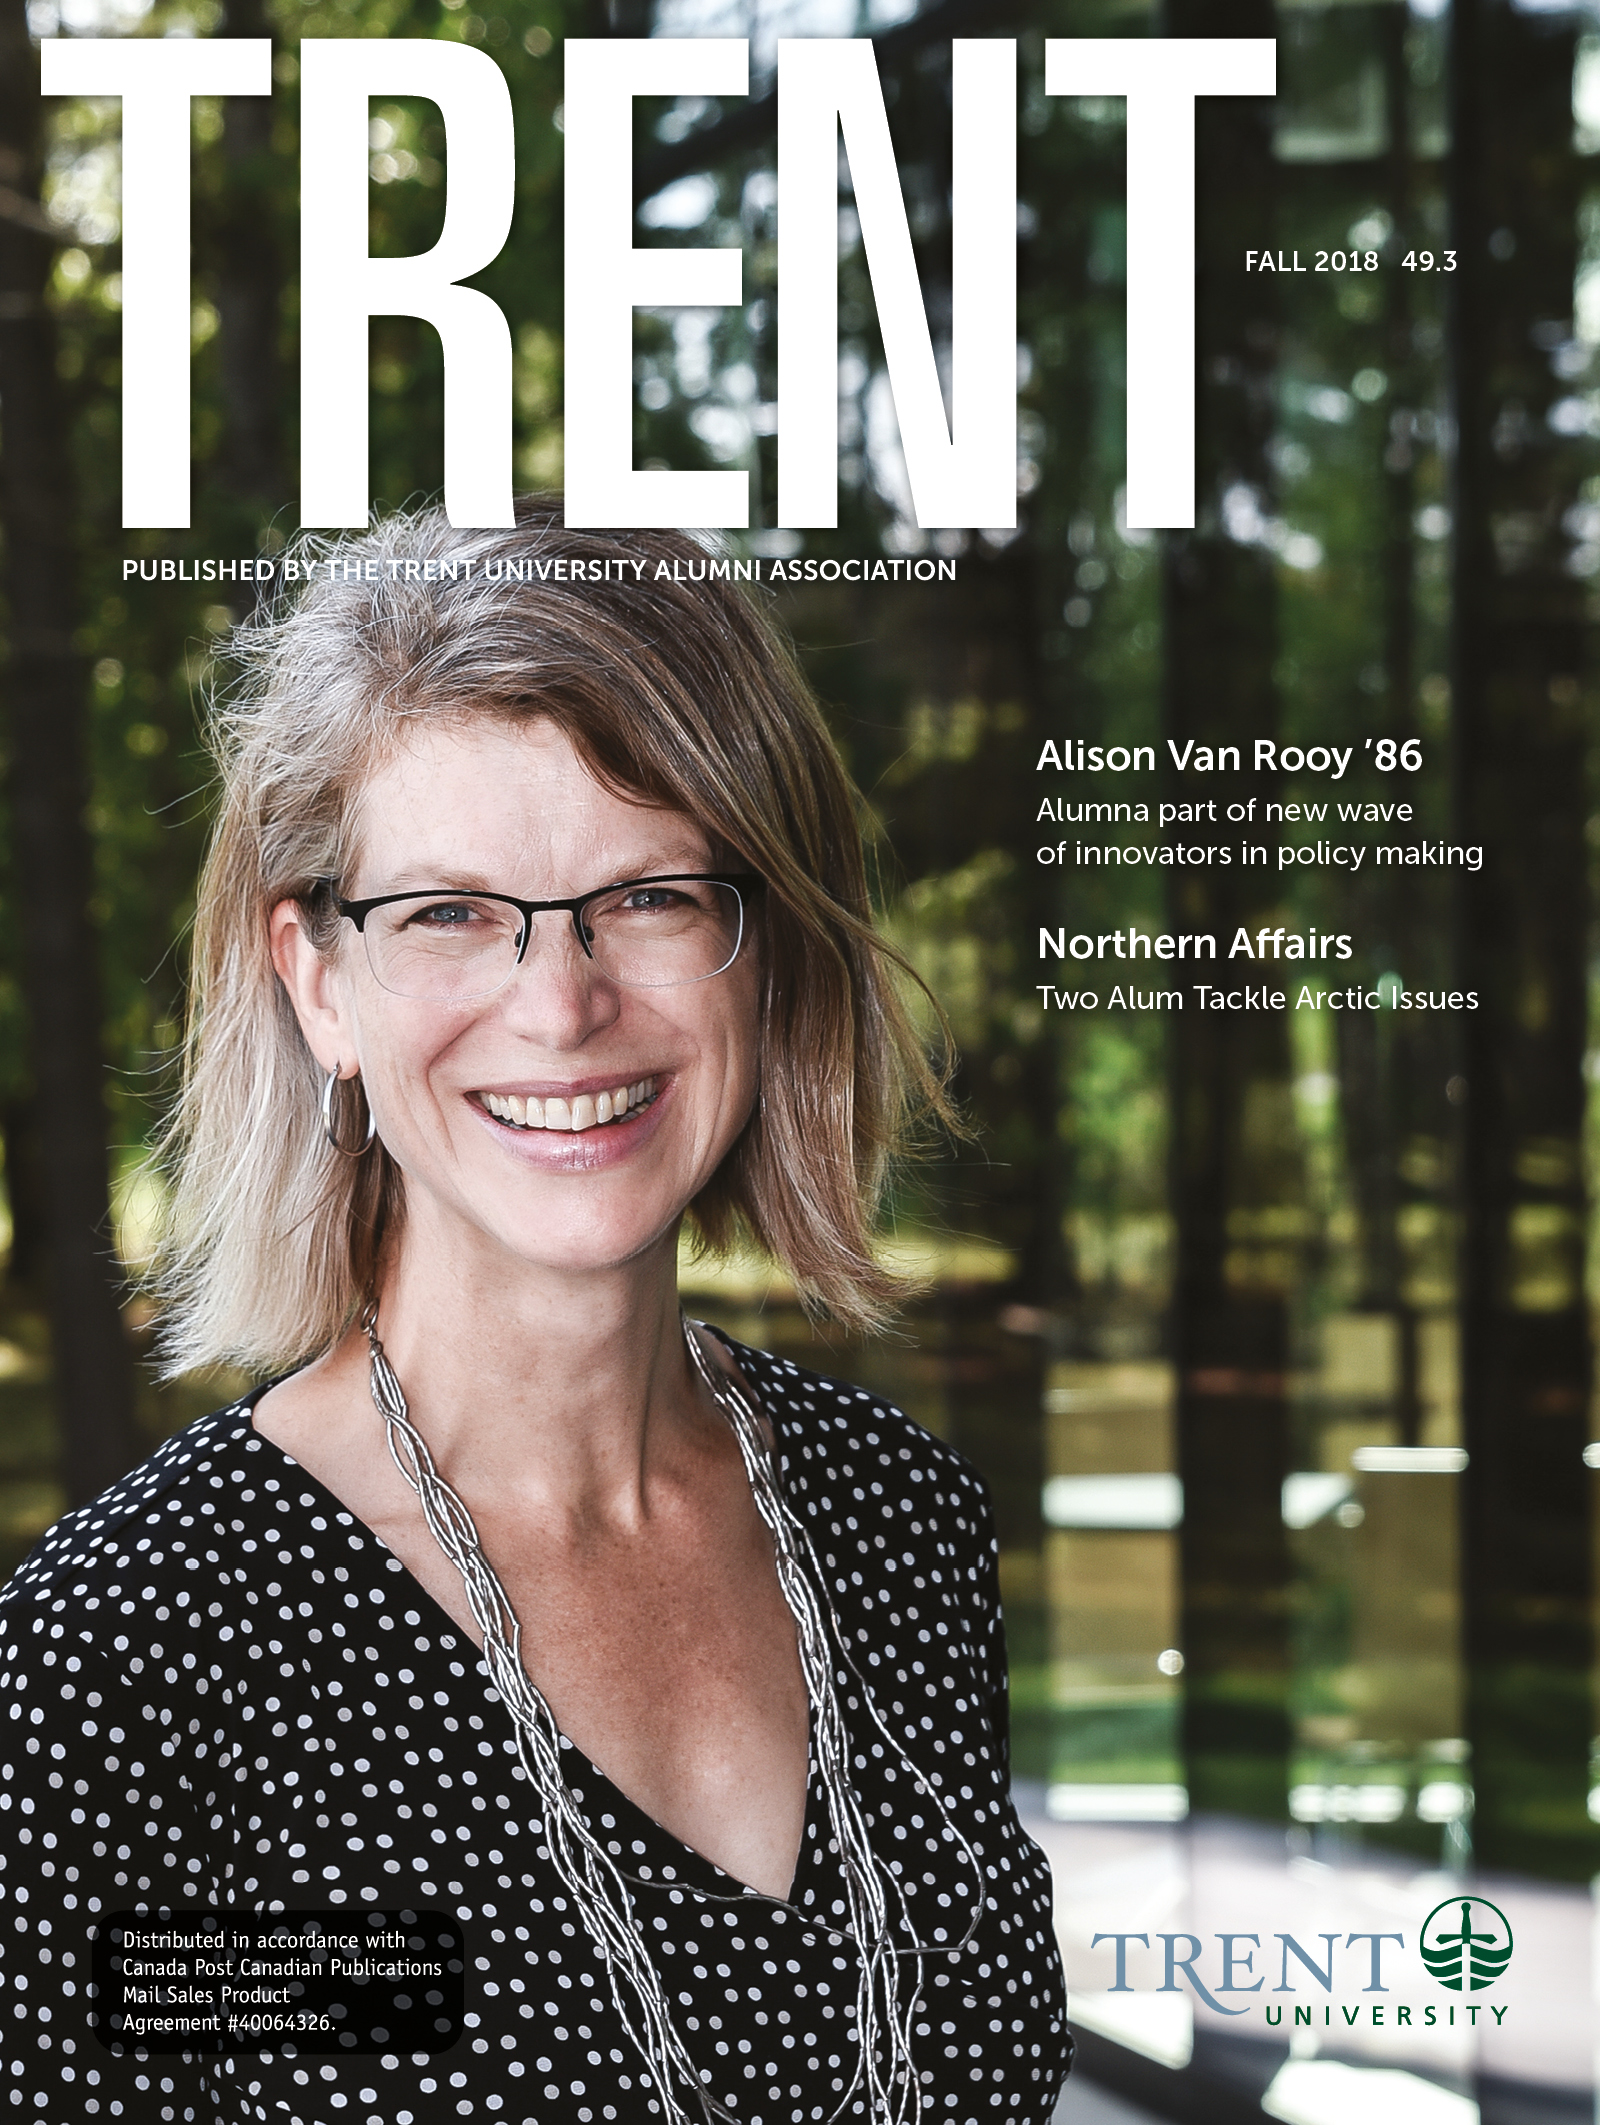 Trent Magazine Cover featuring Alison Van Rooy '86